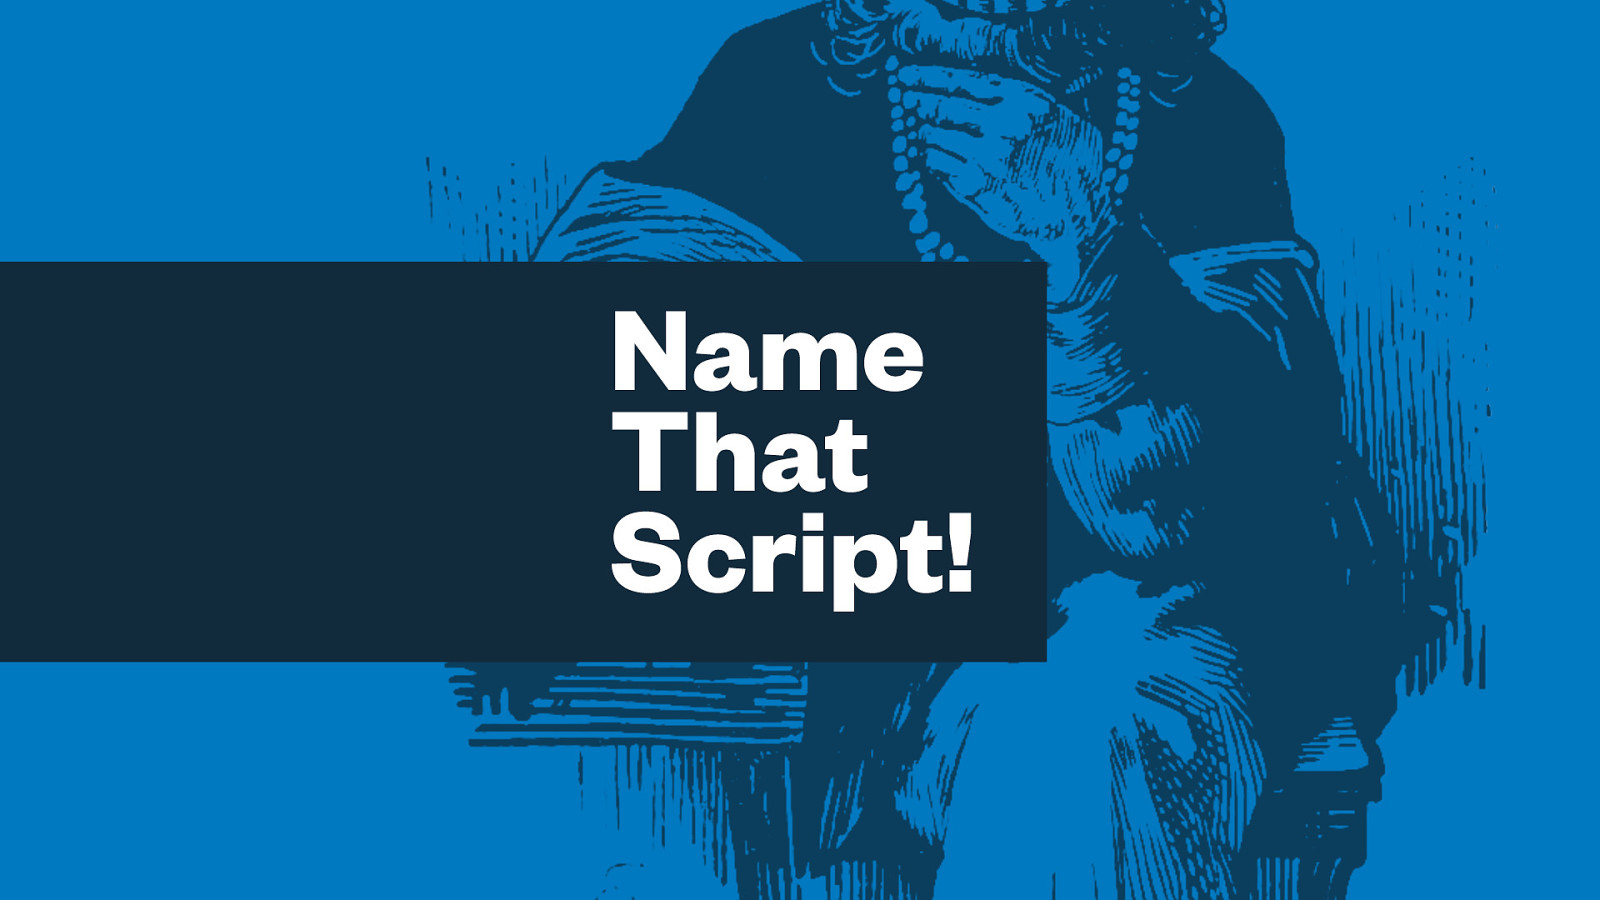 Name That Script!